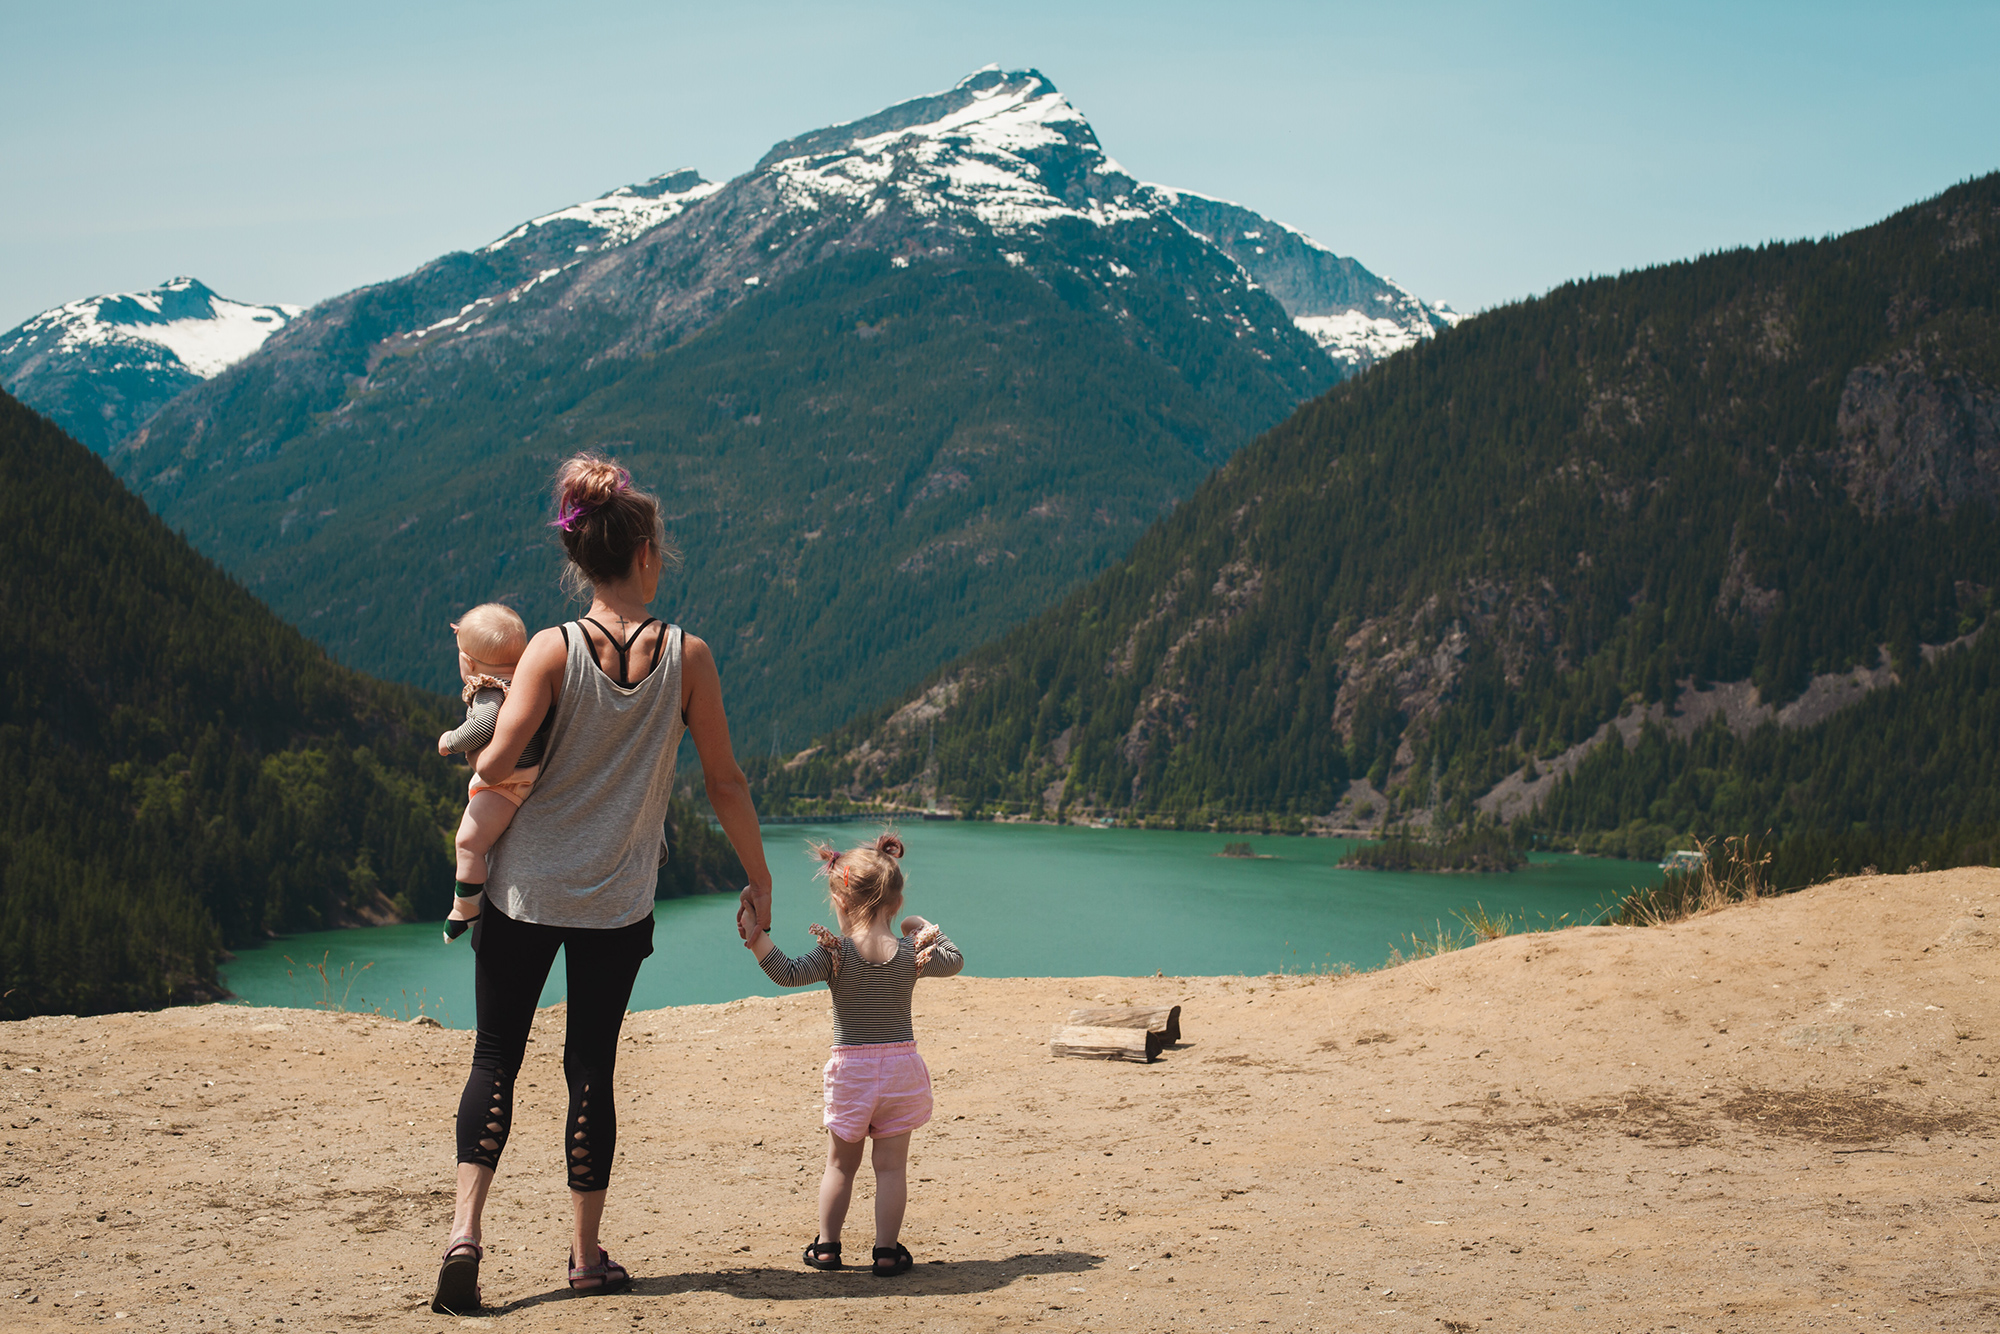 Mother and kids standing over a scenic park view